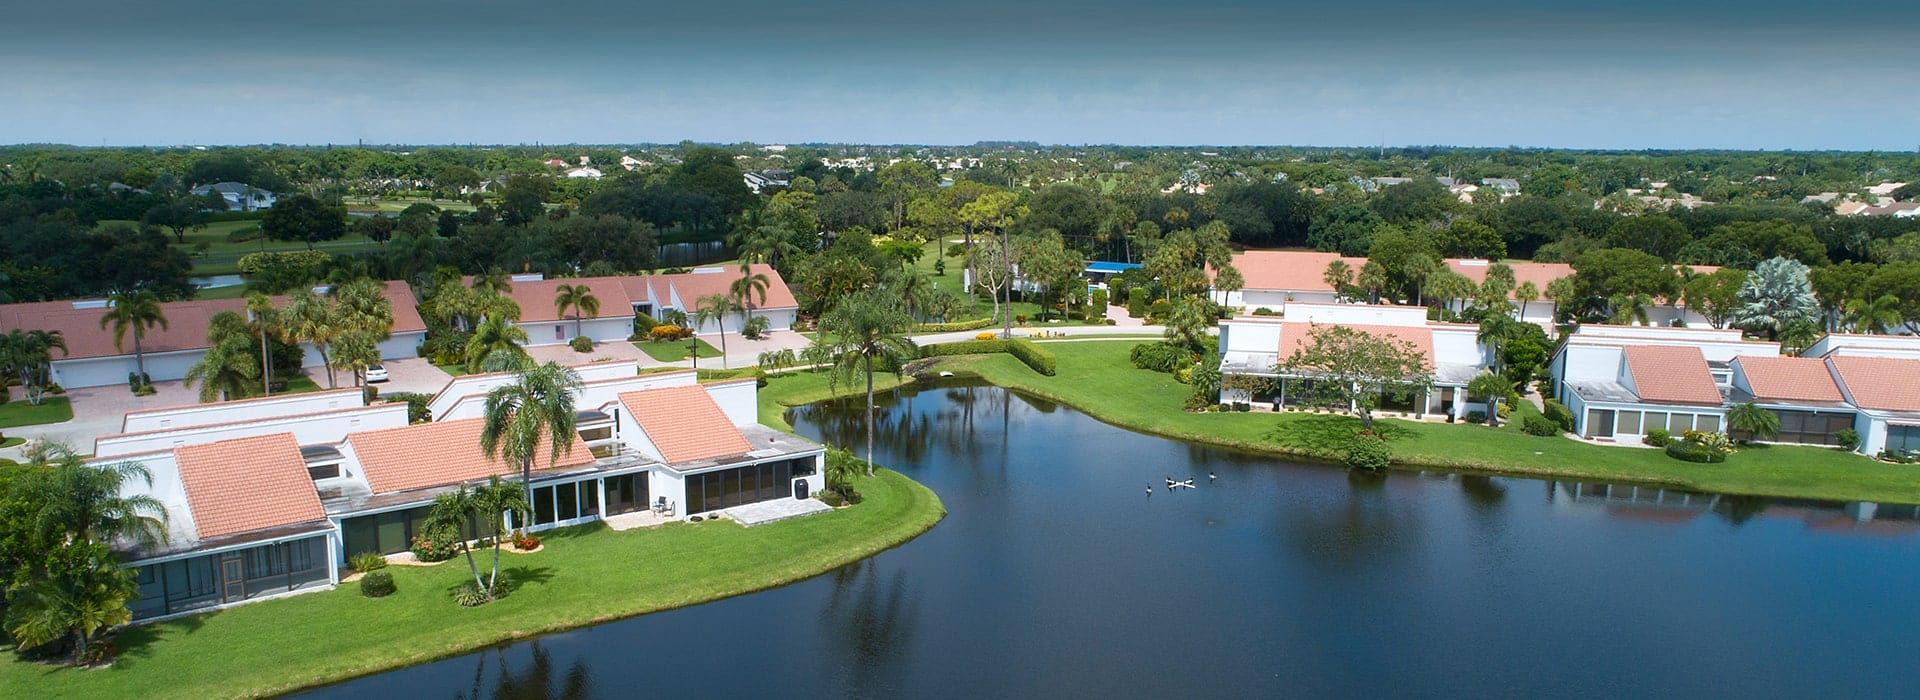 Peppertree villas of Boca West with views of water